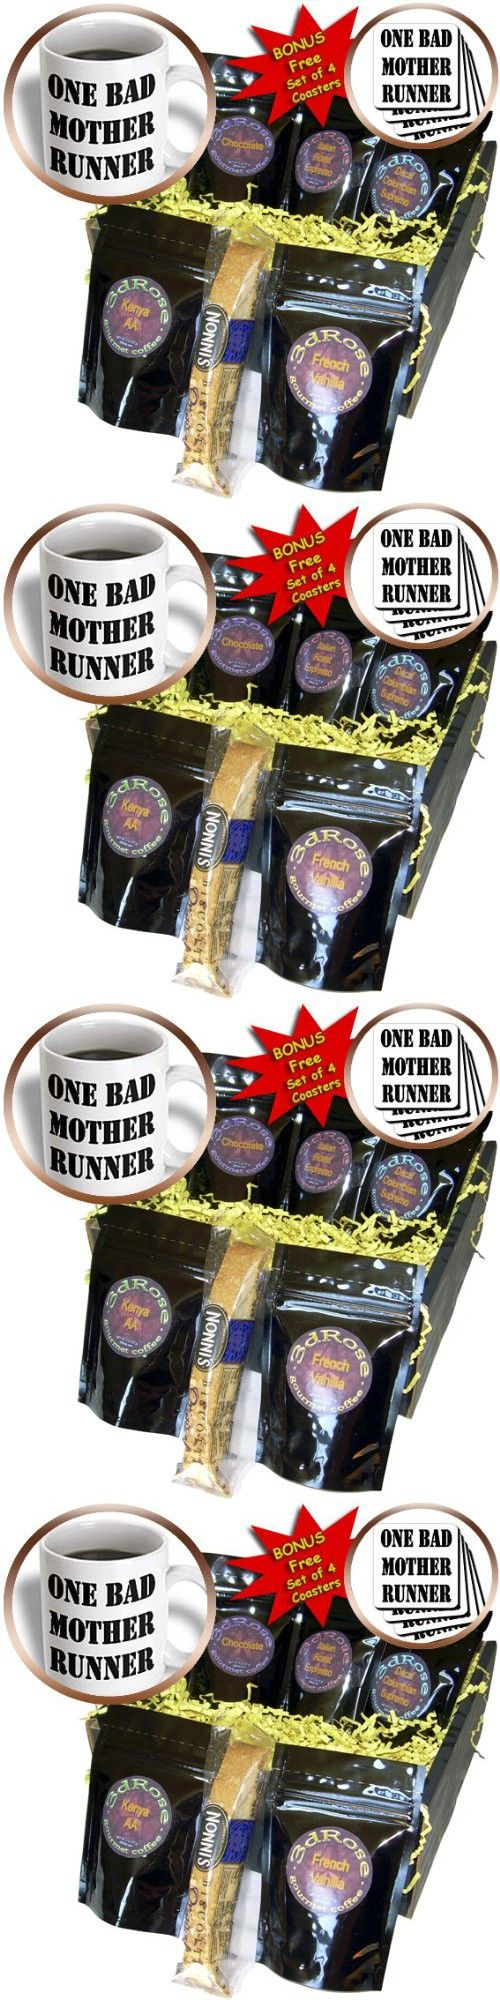 EvaDane - Funny Quotes - One bad mother runner - Coffee Gift Baskets - Coffee Gift Basket (cgb_161096_1)